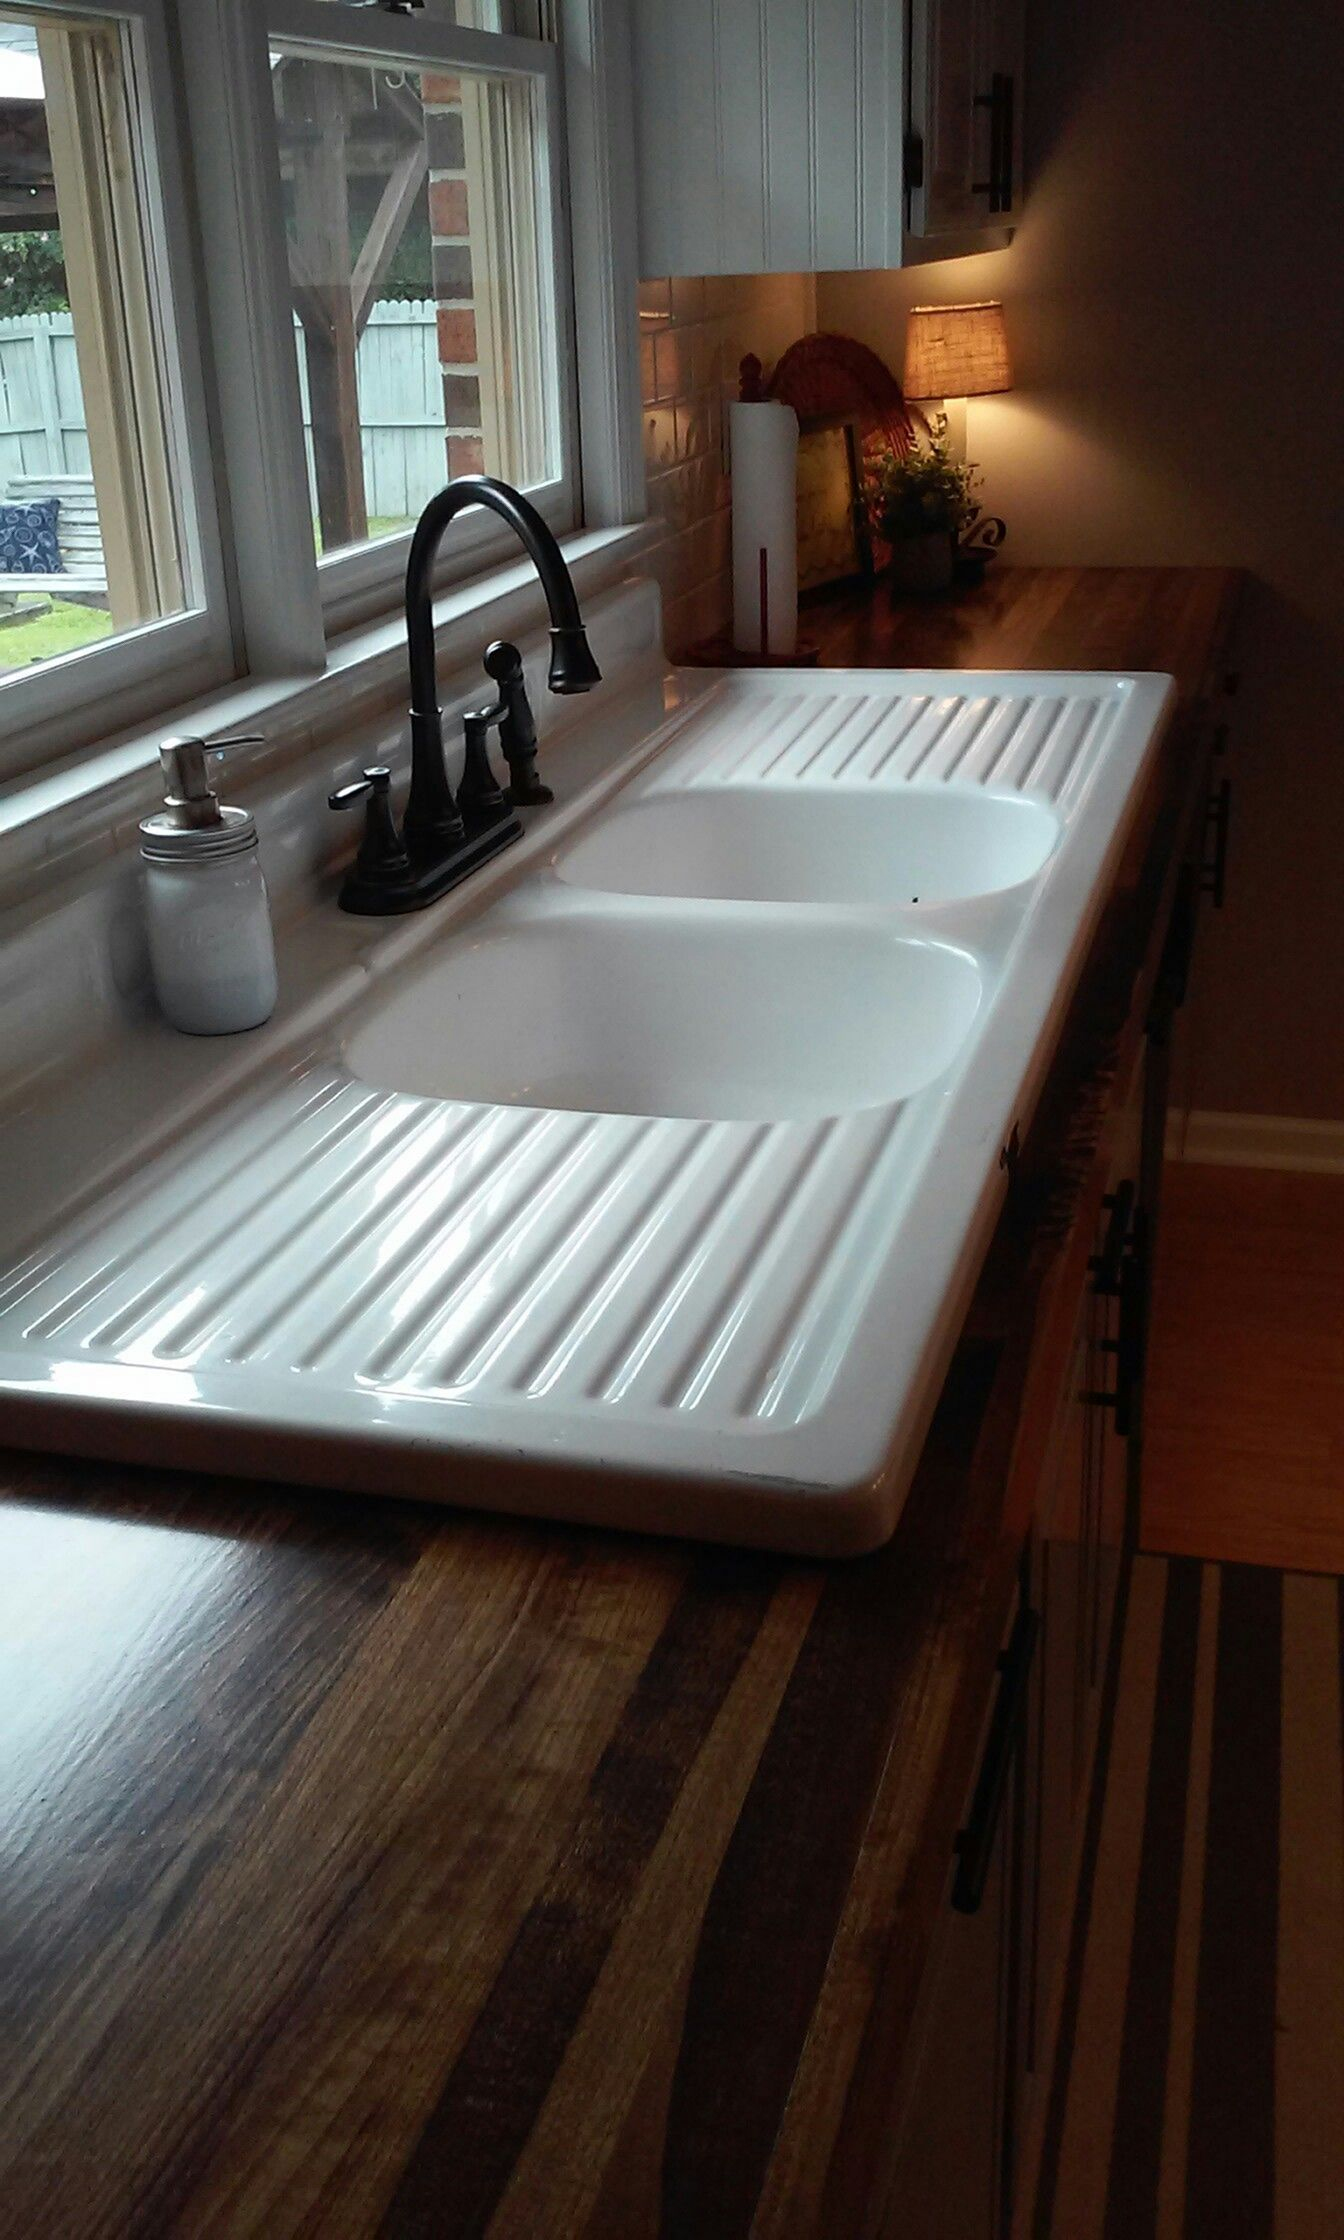 20 amazing sink design ideas for your comfortable kitchen in 2020 rustic kitchen sinks on kitchen sink ideas id=11804